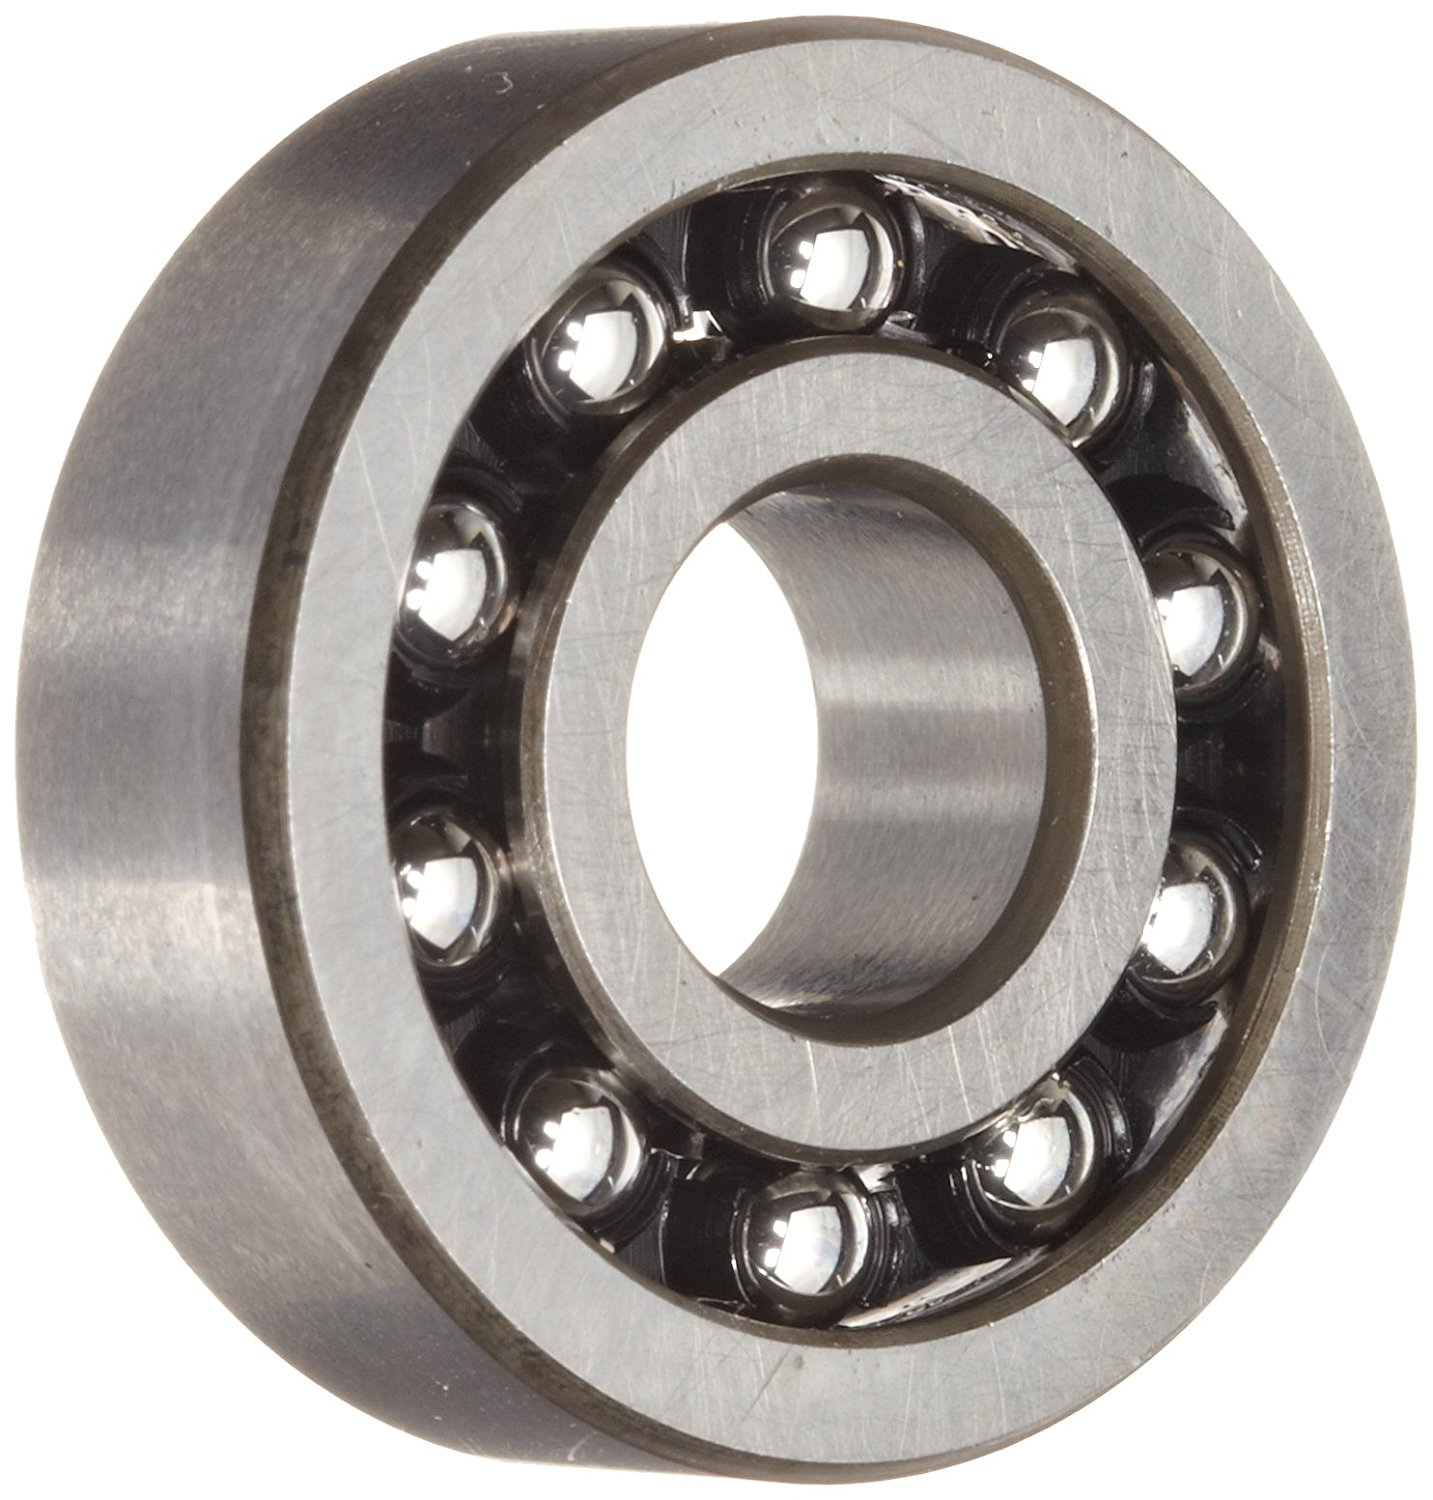 FAG 1207.TV Double Row Self-Aligning Ball Bearings (Inside Dia 35 mm,Outside Dia 72 mm,Width 17mm)